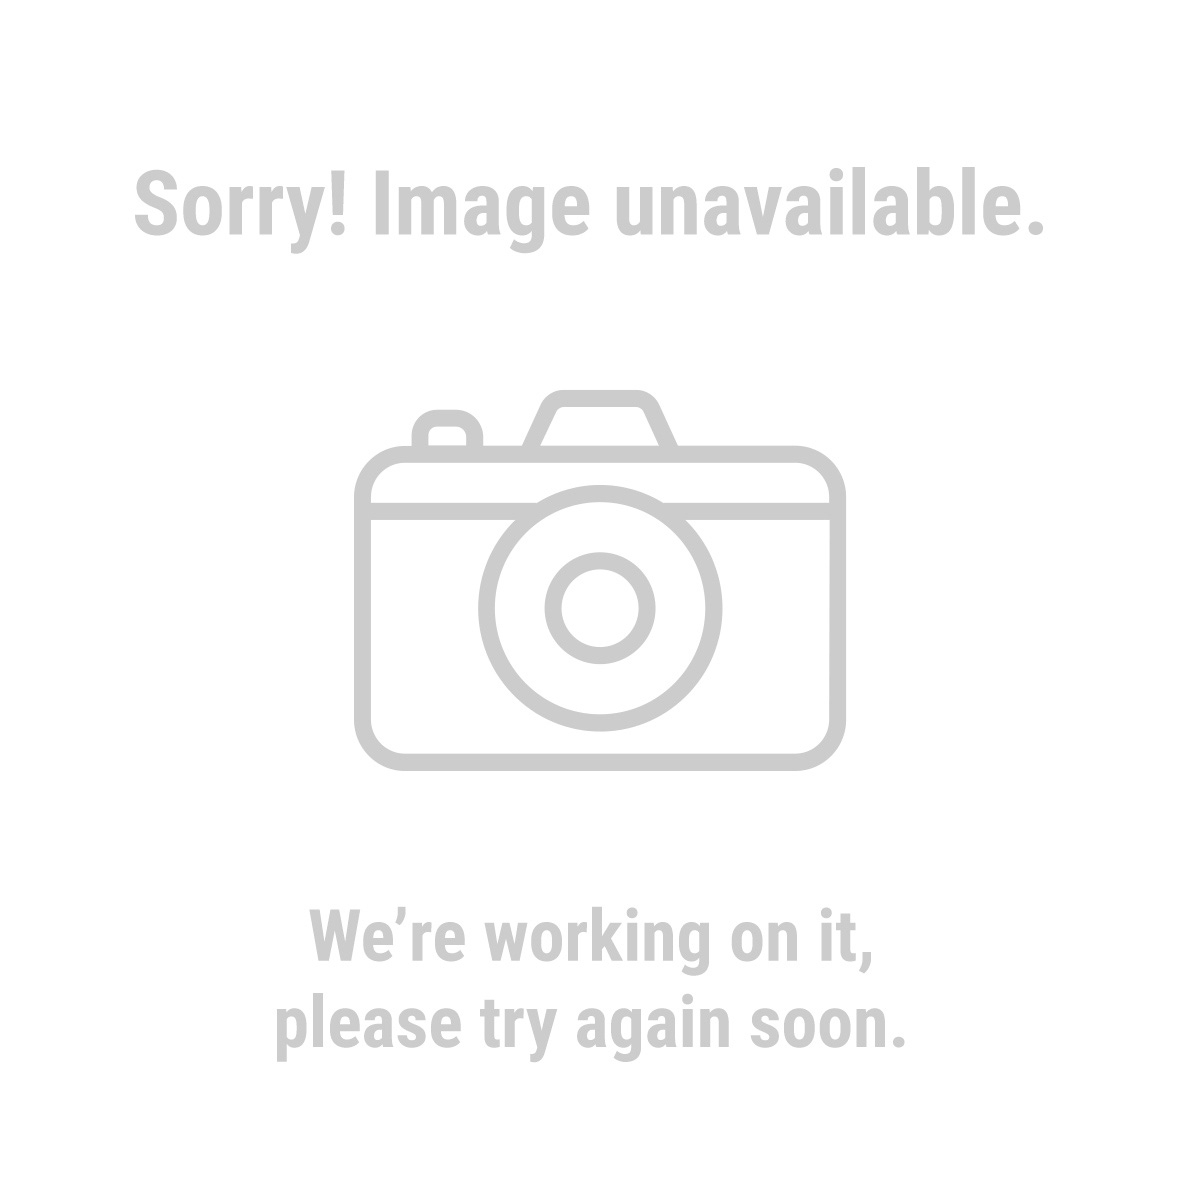 69694 All-Terrain Tricycle